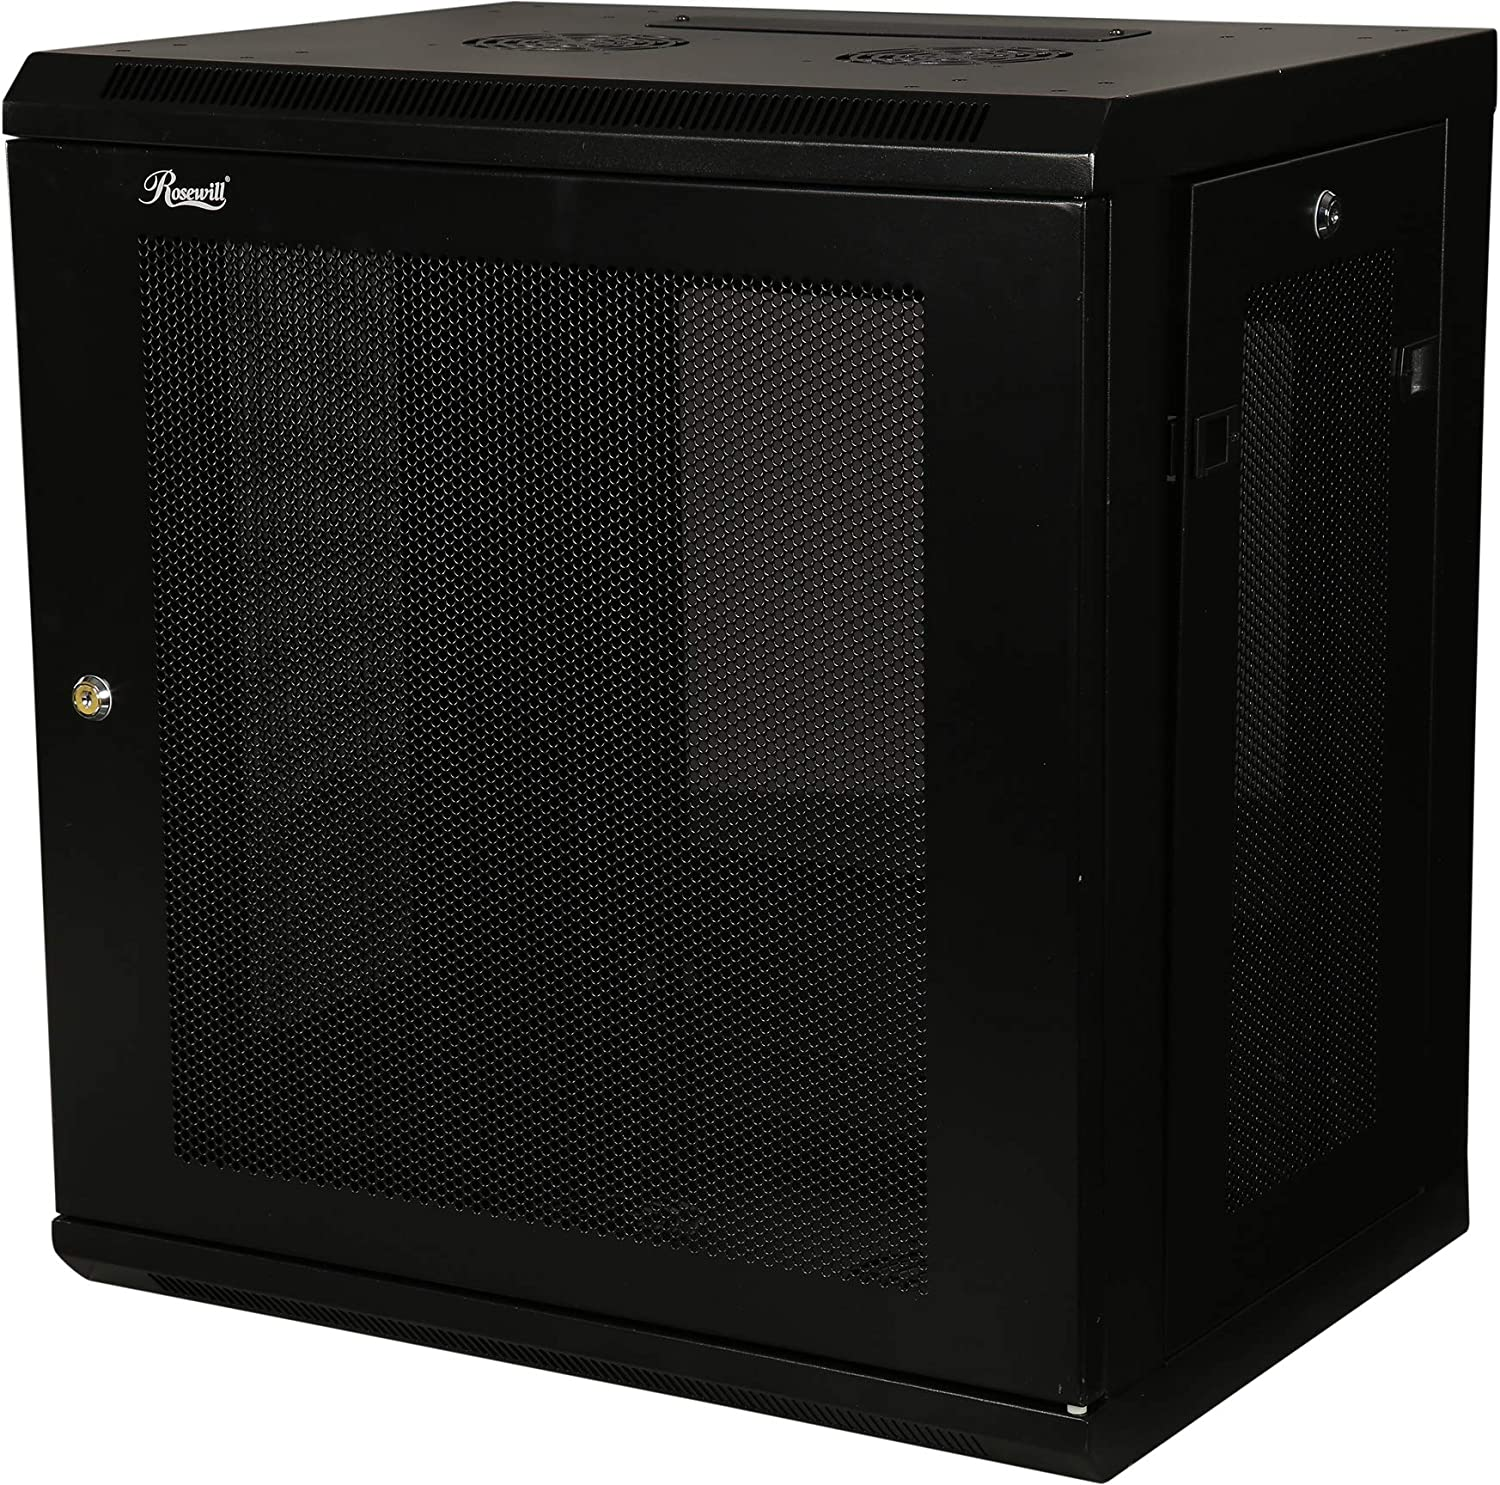 RSWM-9U001 Rosewill Professional 9U Wall mount Cabinet Enclosure 19-Inch Server Network Rack With Locking Glass Door 16-Inches Deep Black